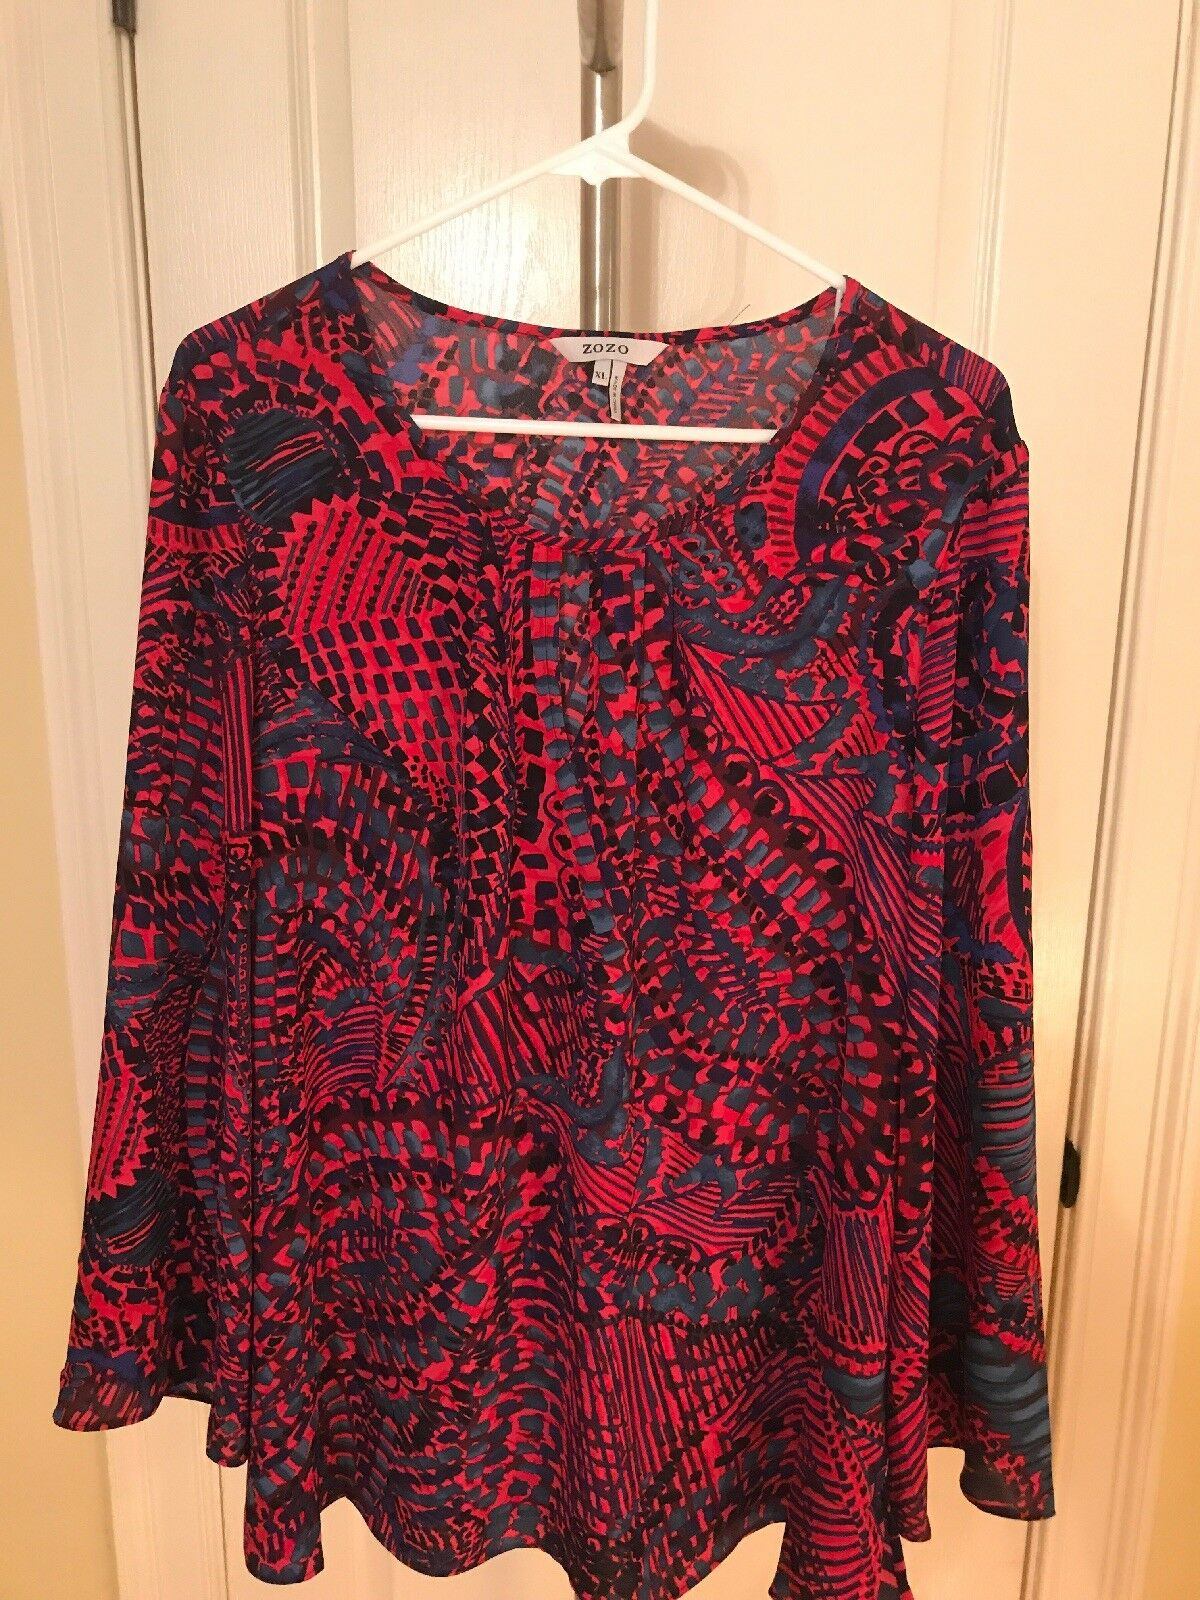 NWT  ZoZo Blouse. Printed. Wide Sleeve Keyhole Opening. Größe Large